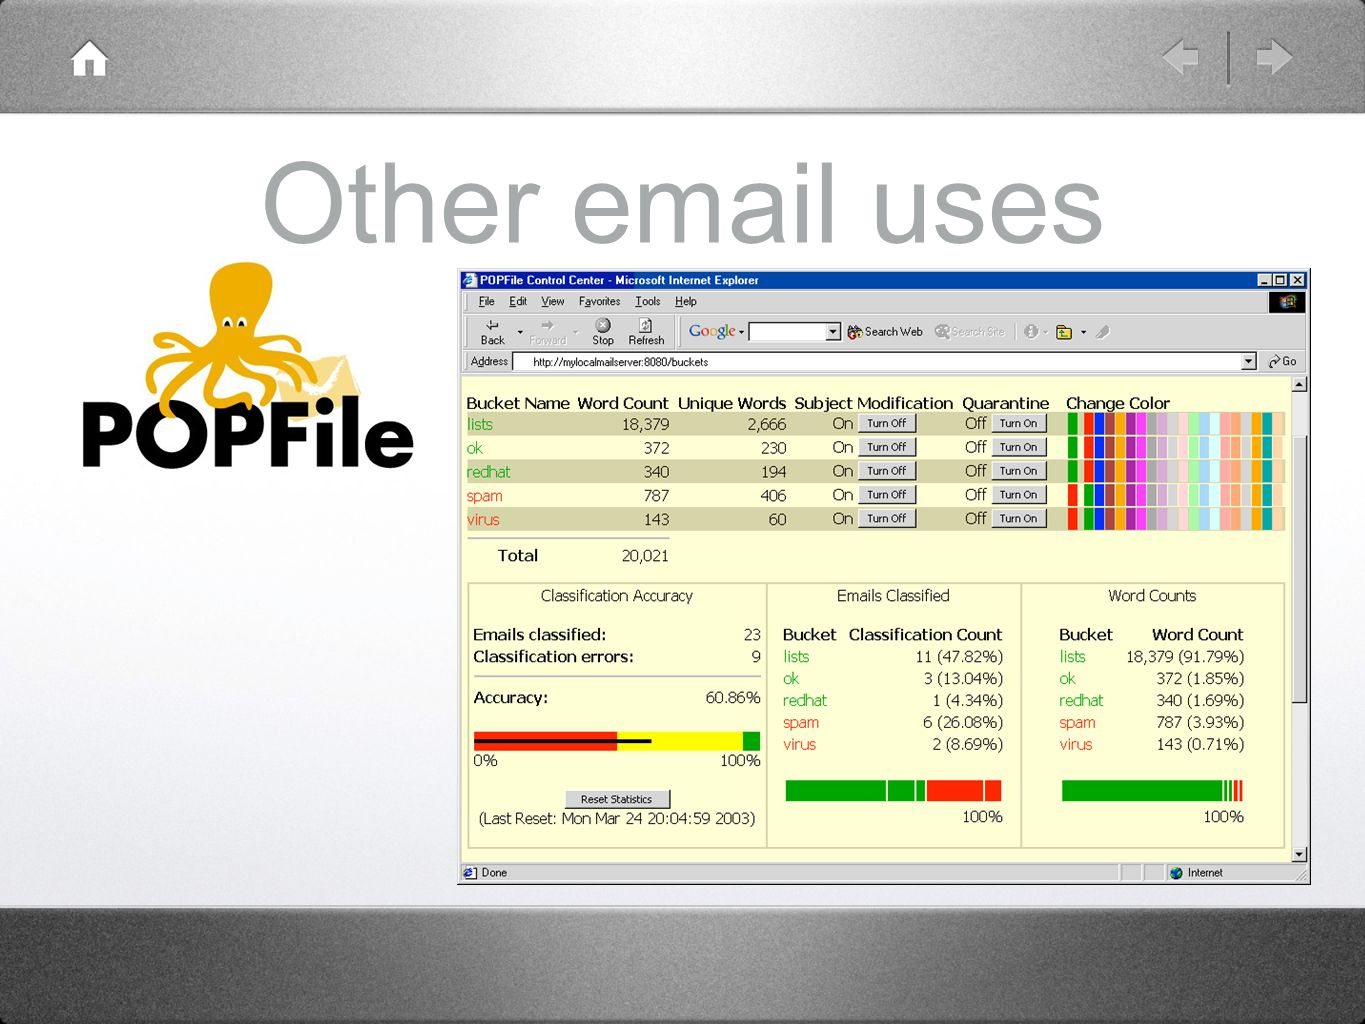 Other email uses